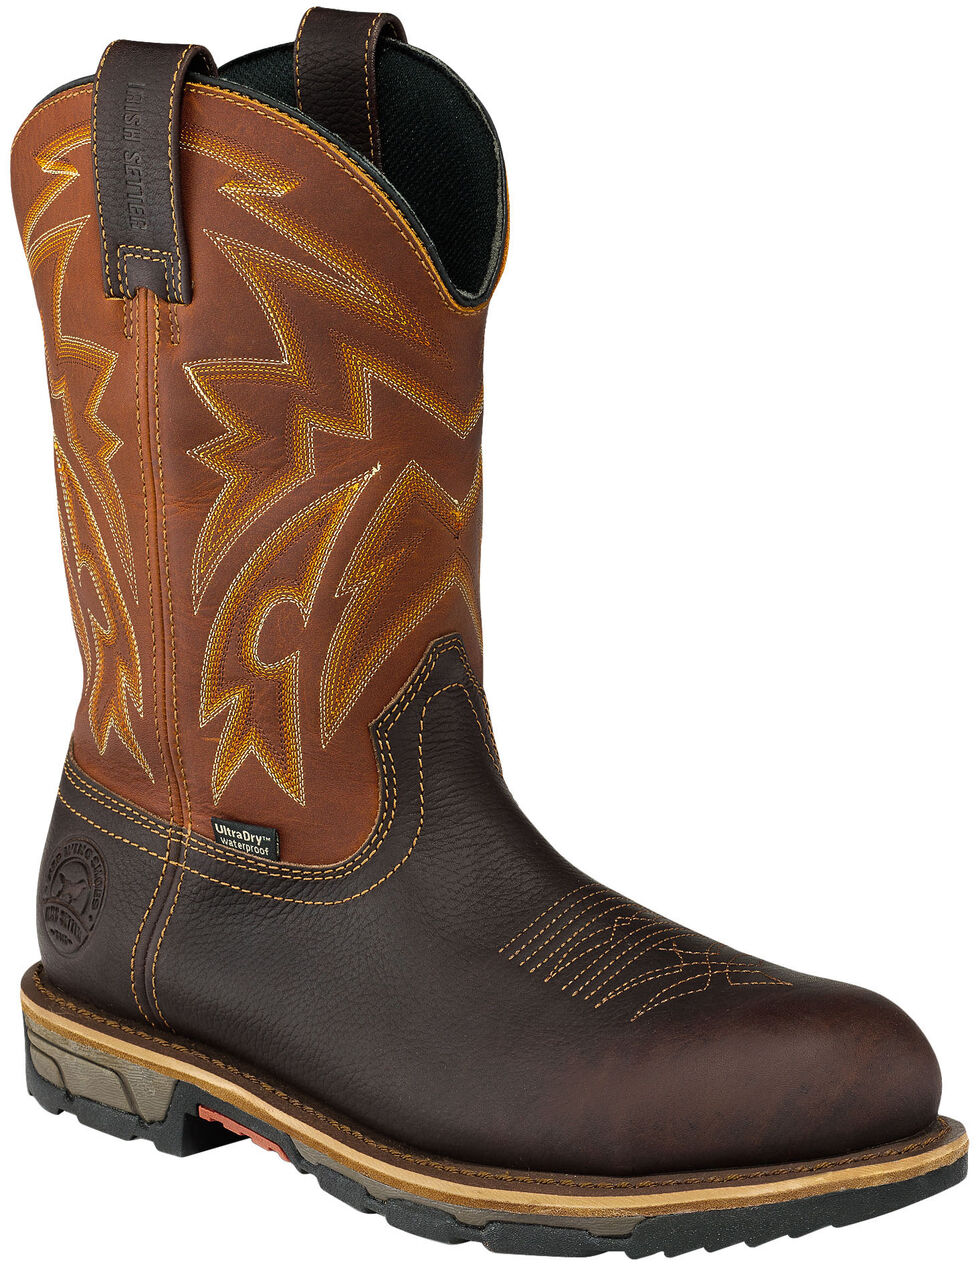 Irish Setter by Red Wing Shoes Men's Waterproof Harvest Gold Marshall Work Boots - Steel Toe , Brown, hi-res